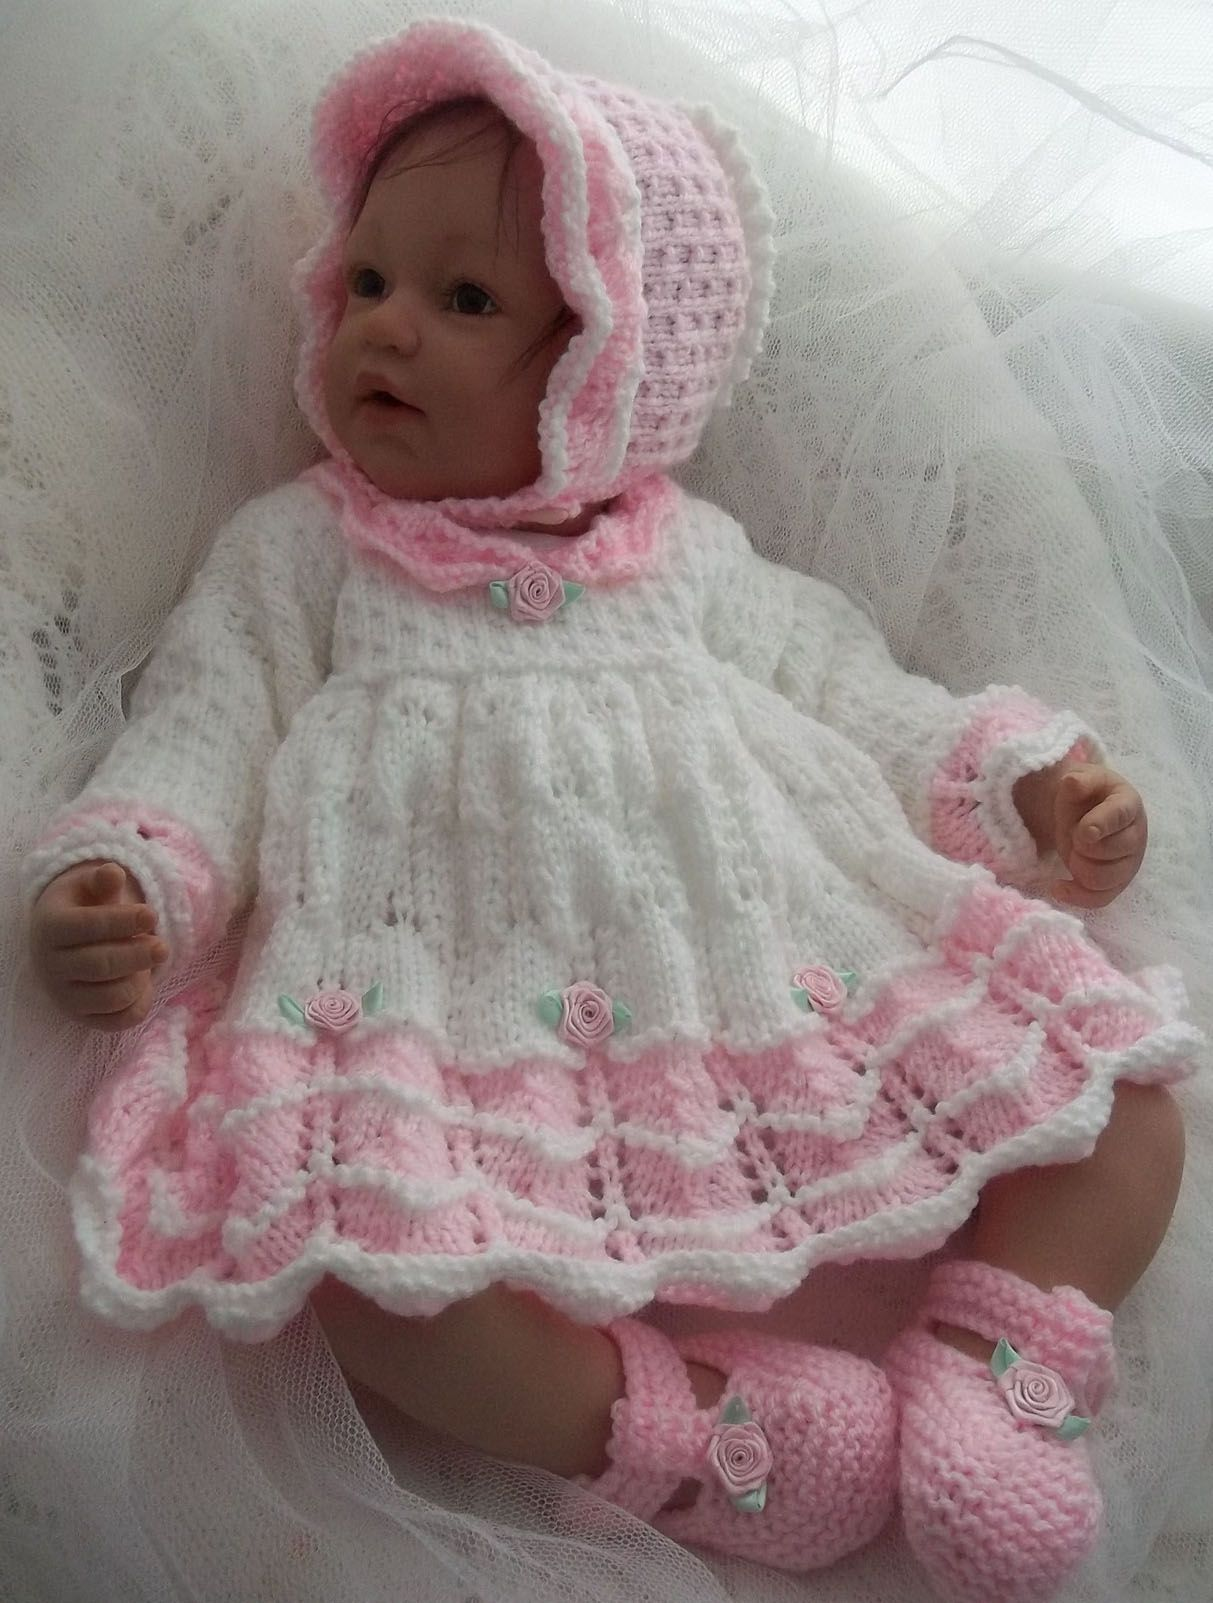 Tipeetoes Handmade Knitted Baby Wear Baby Amp Reborn Doll